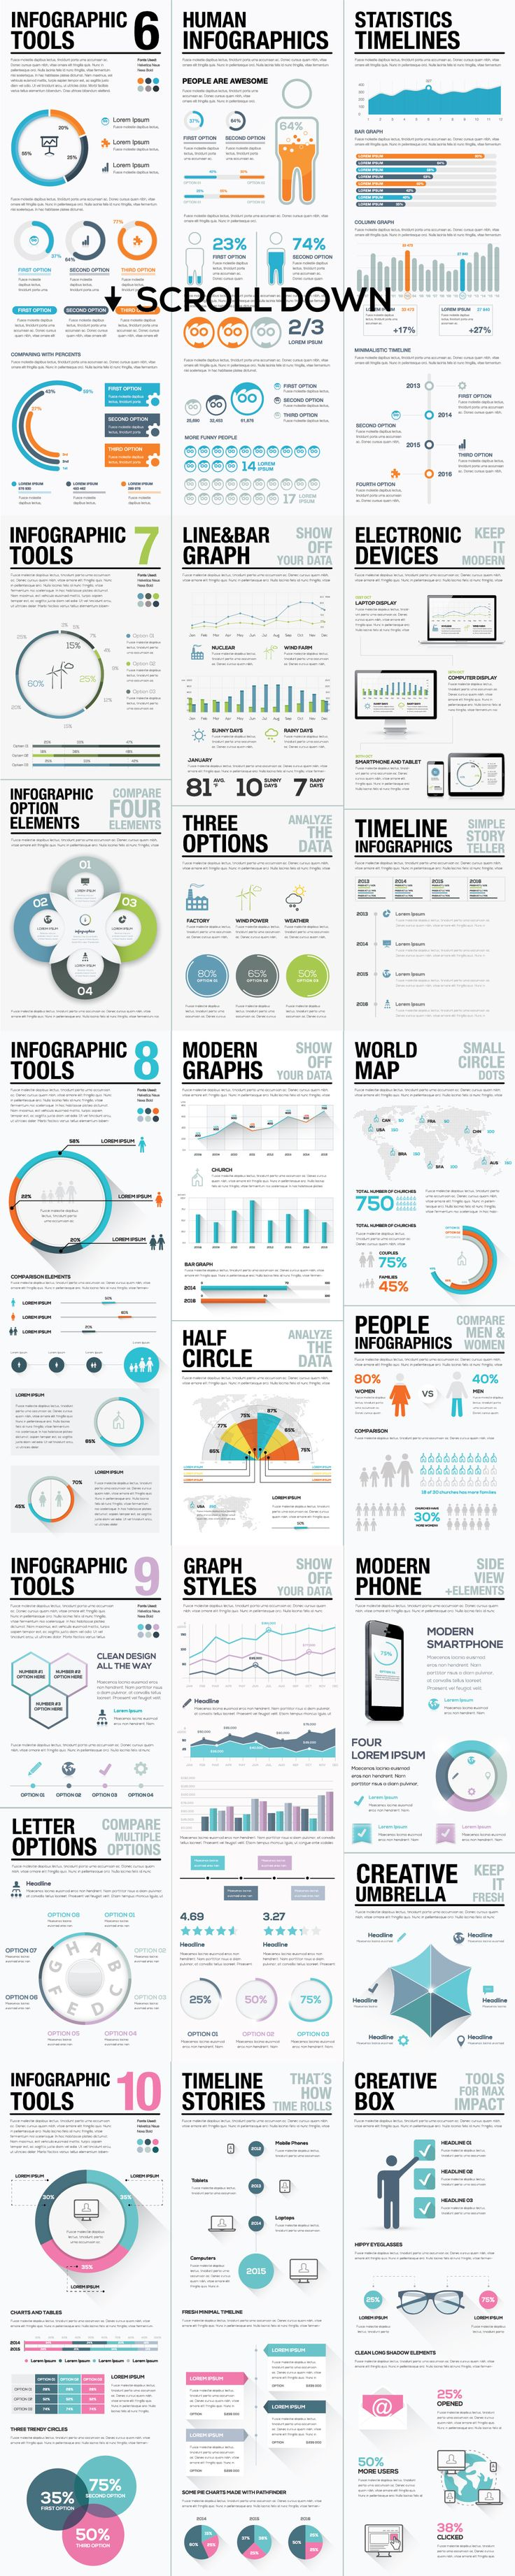 Infographic Inspiration